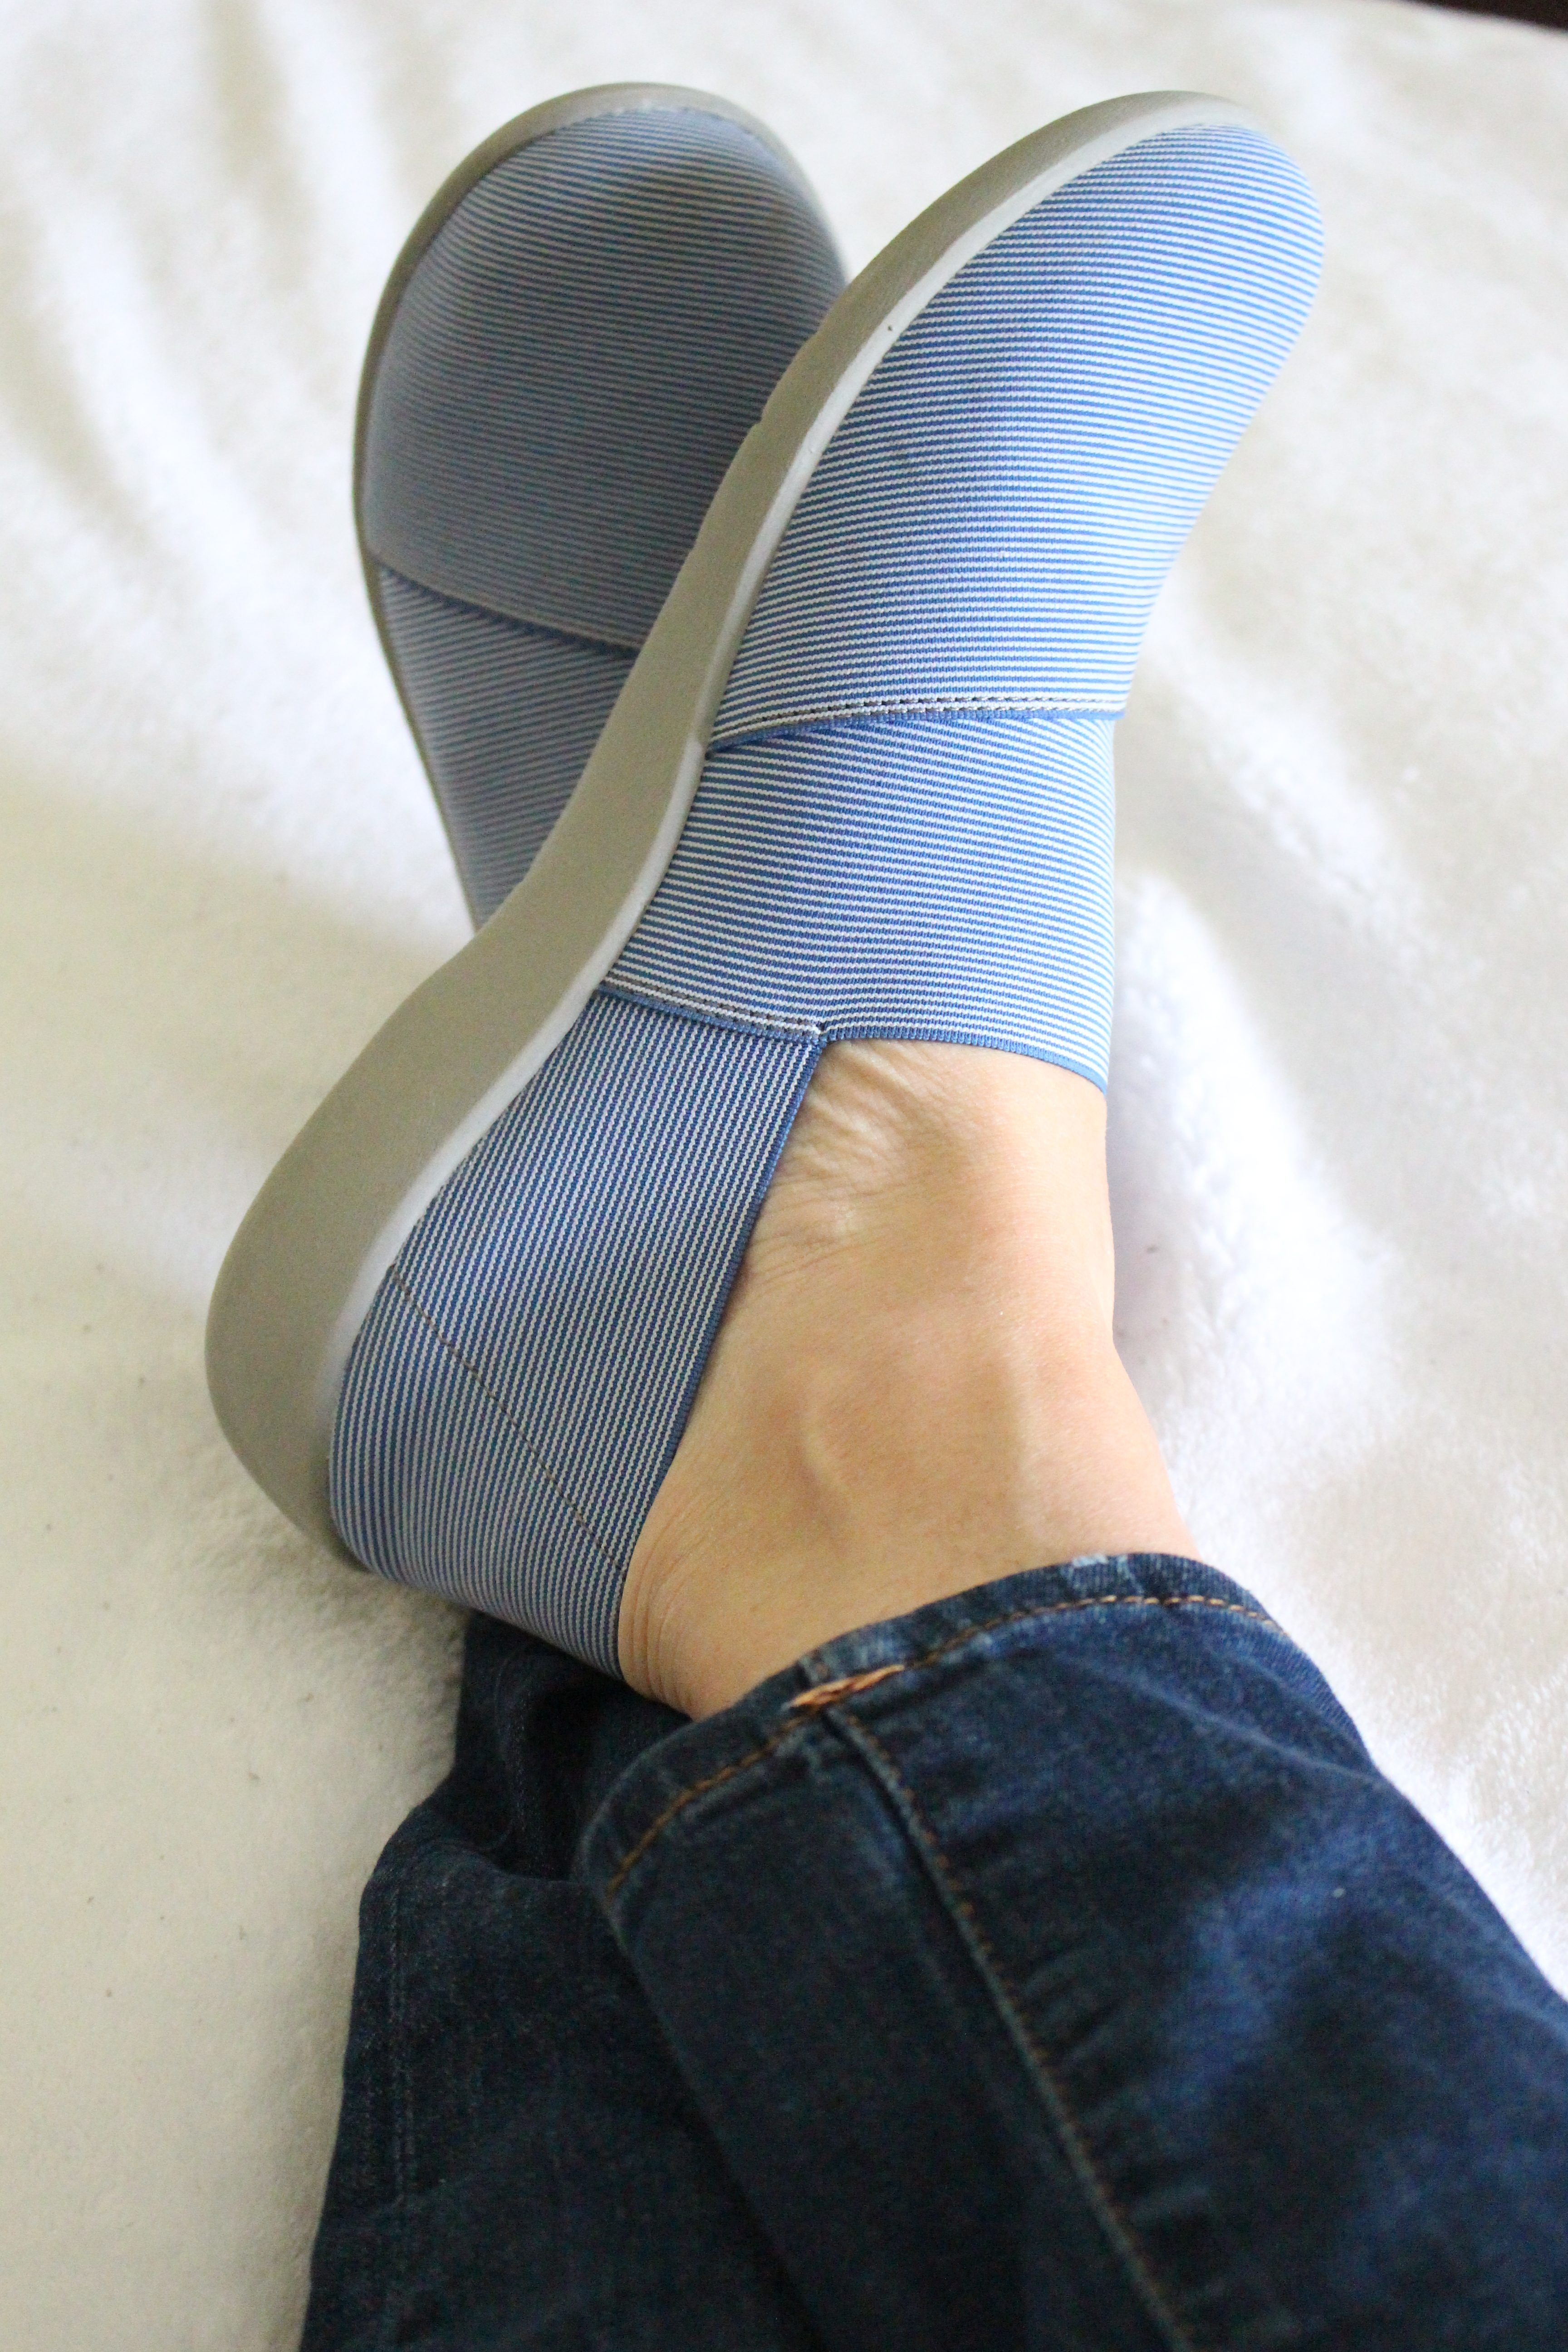 Clarks cloud stepper shoes for versatility by www.whitecottagehomeandliving.com